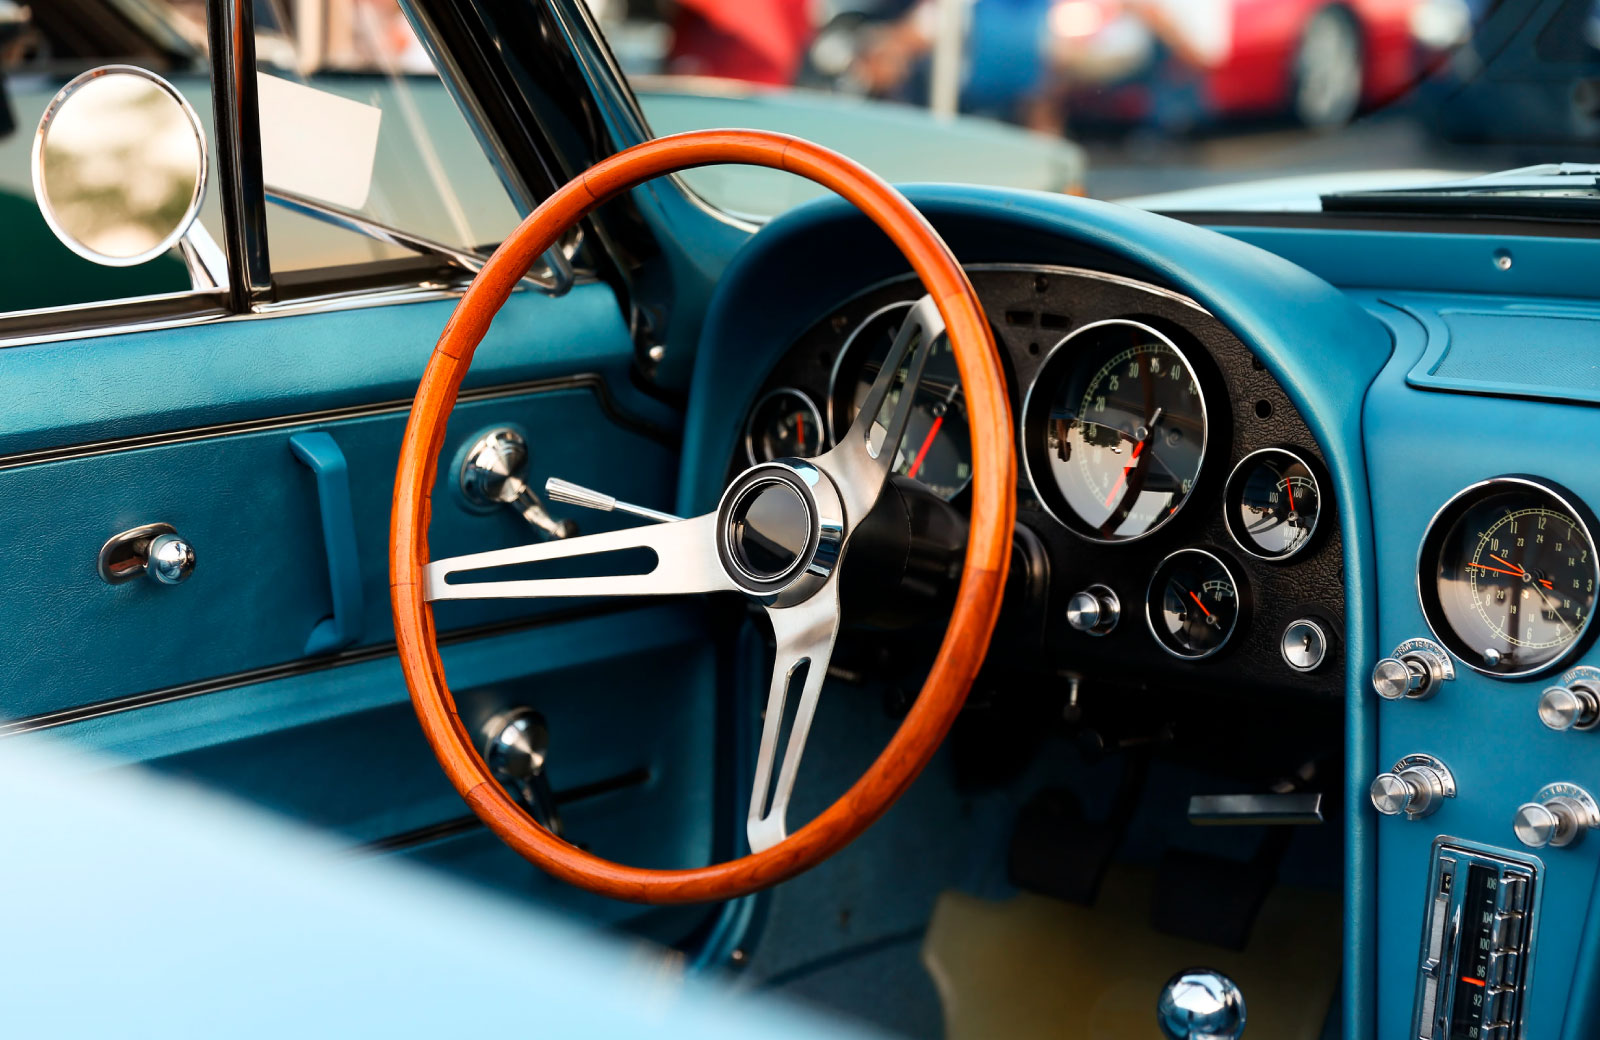 steering wheel of vintage car